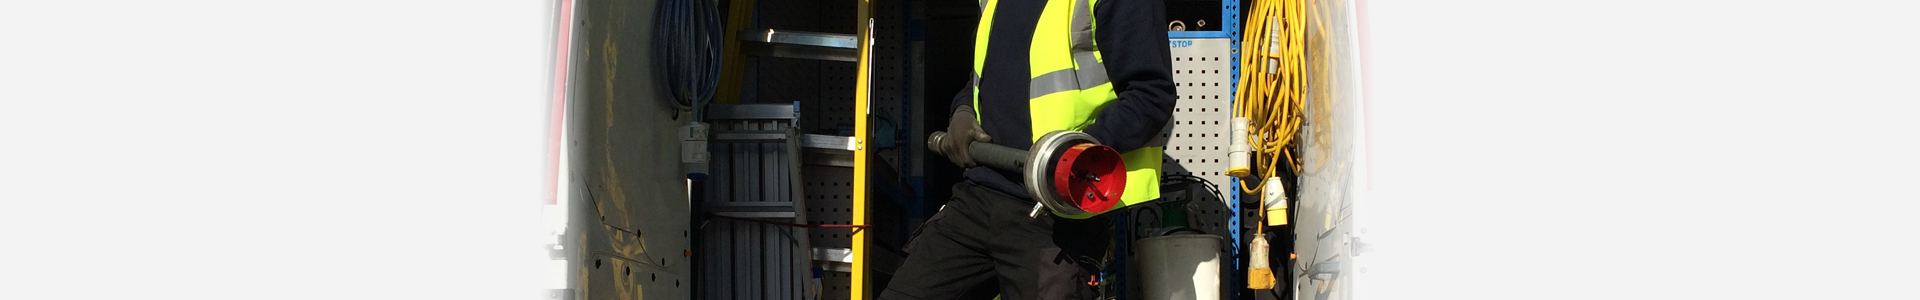 allied-pipe-freezing-services-ltd-case-study